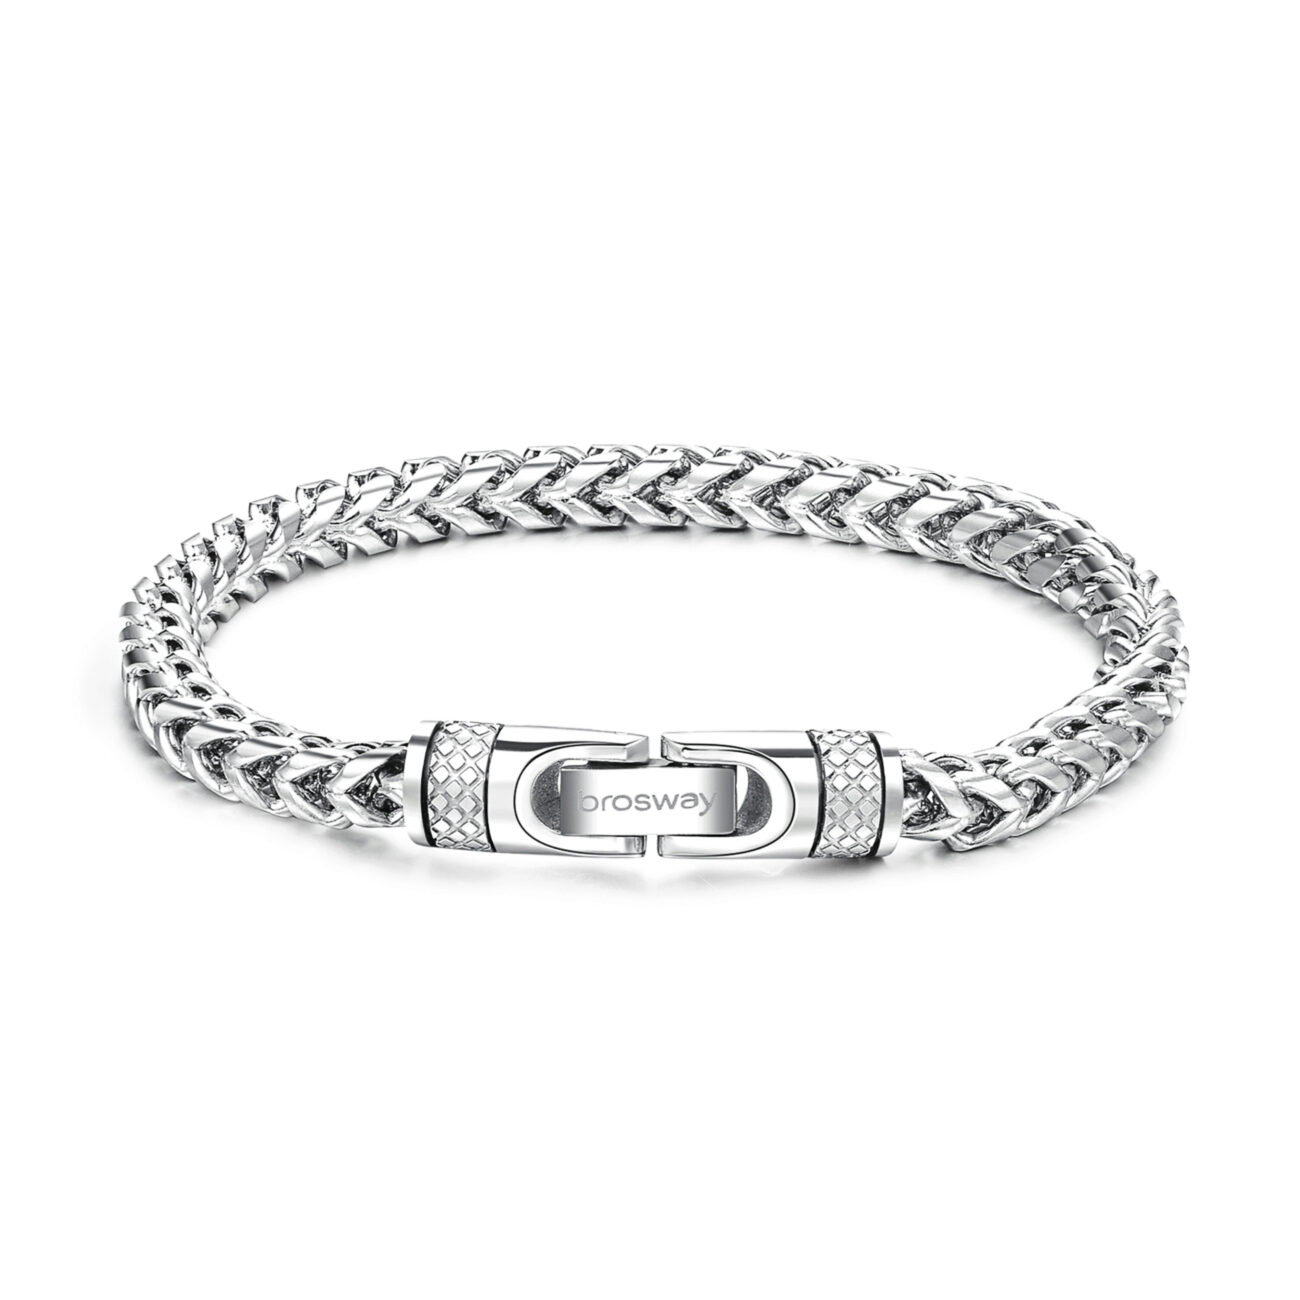 Polished and brushed 316L stainless steel bracelet.